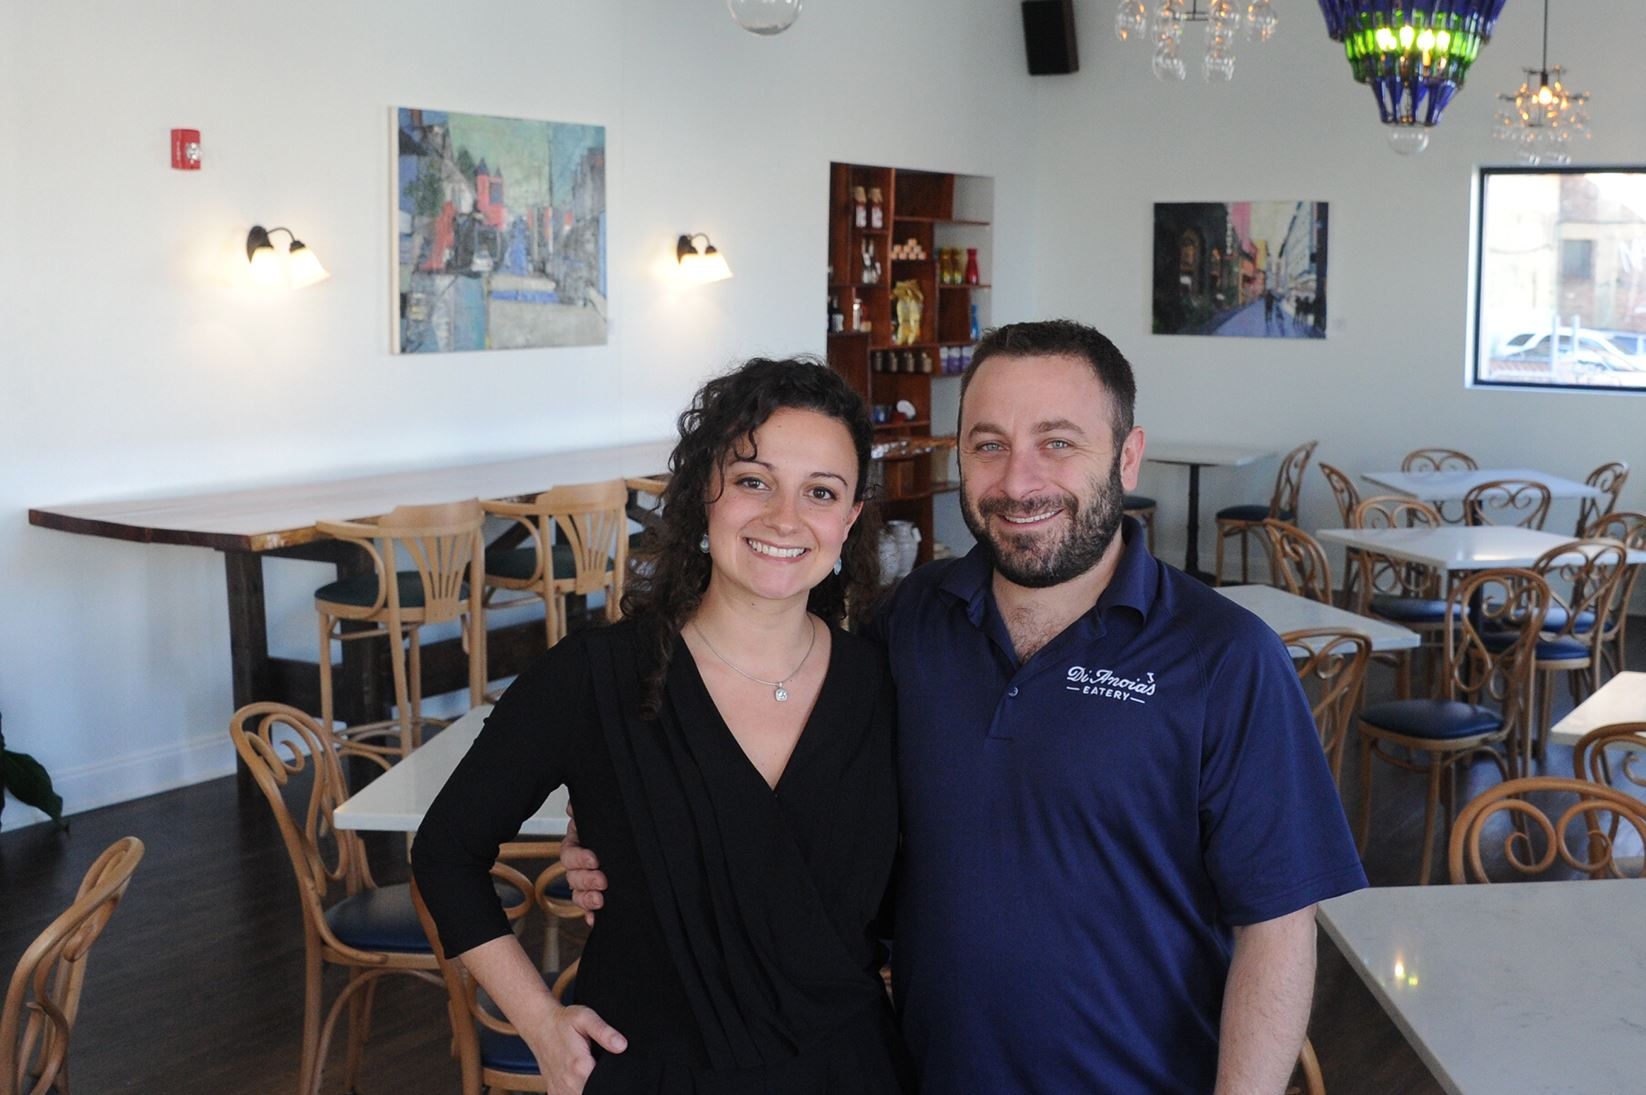 20161028lf-Eatery02-1 Dave Anoia and Aimee DiAndrea are expanding the current location to include a pizzeria by summer if all goes well.